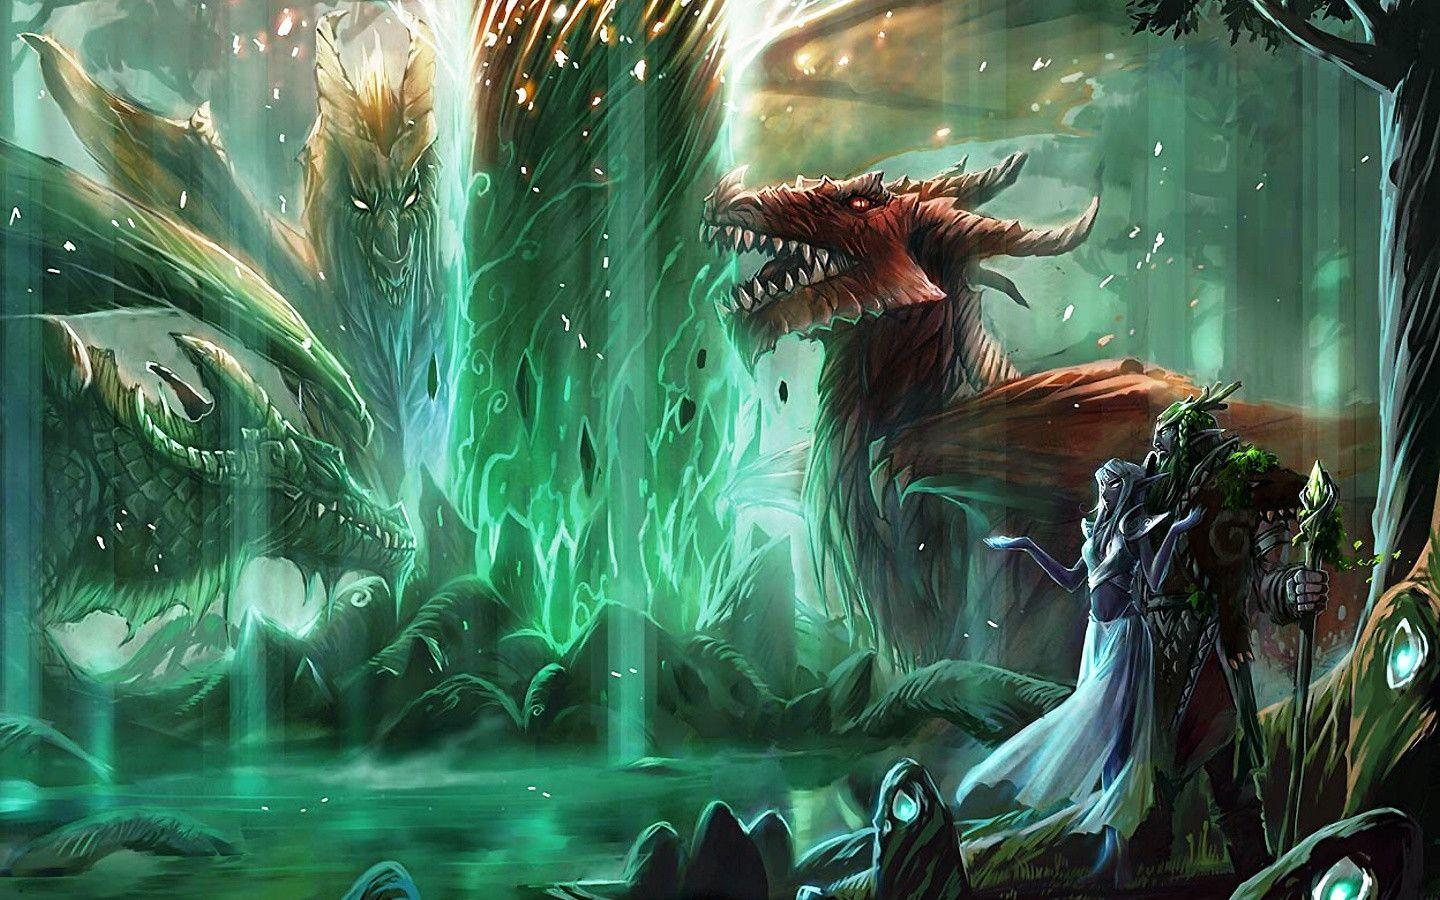 World Of Warcraft wallpaper - 5 | Index of Wallpapers